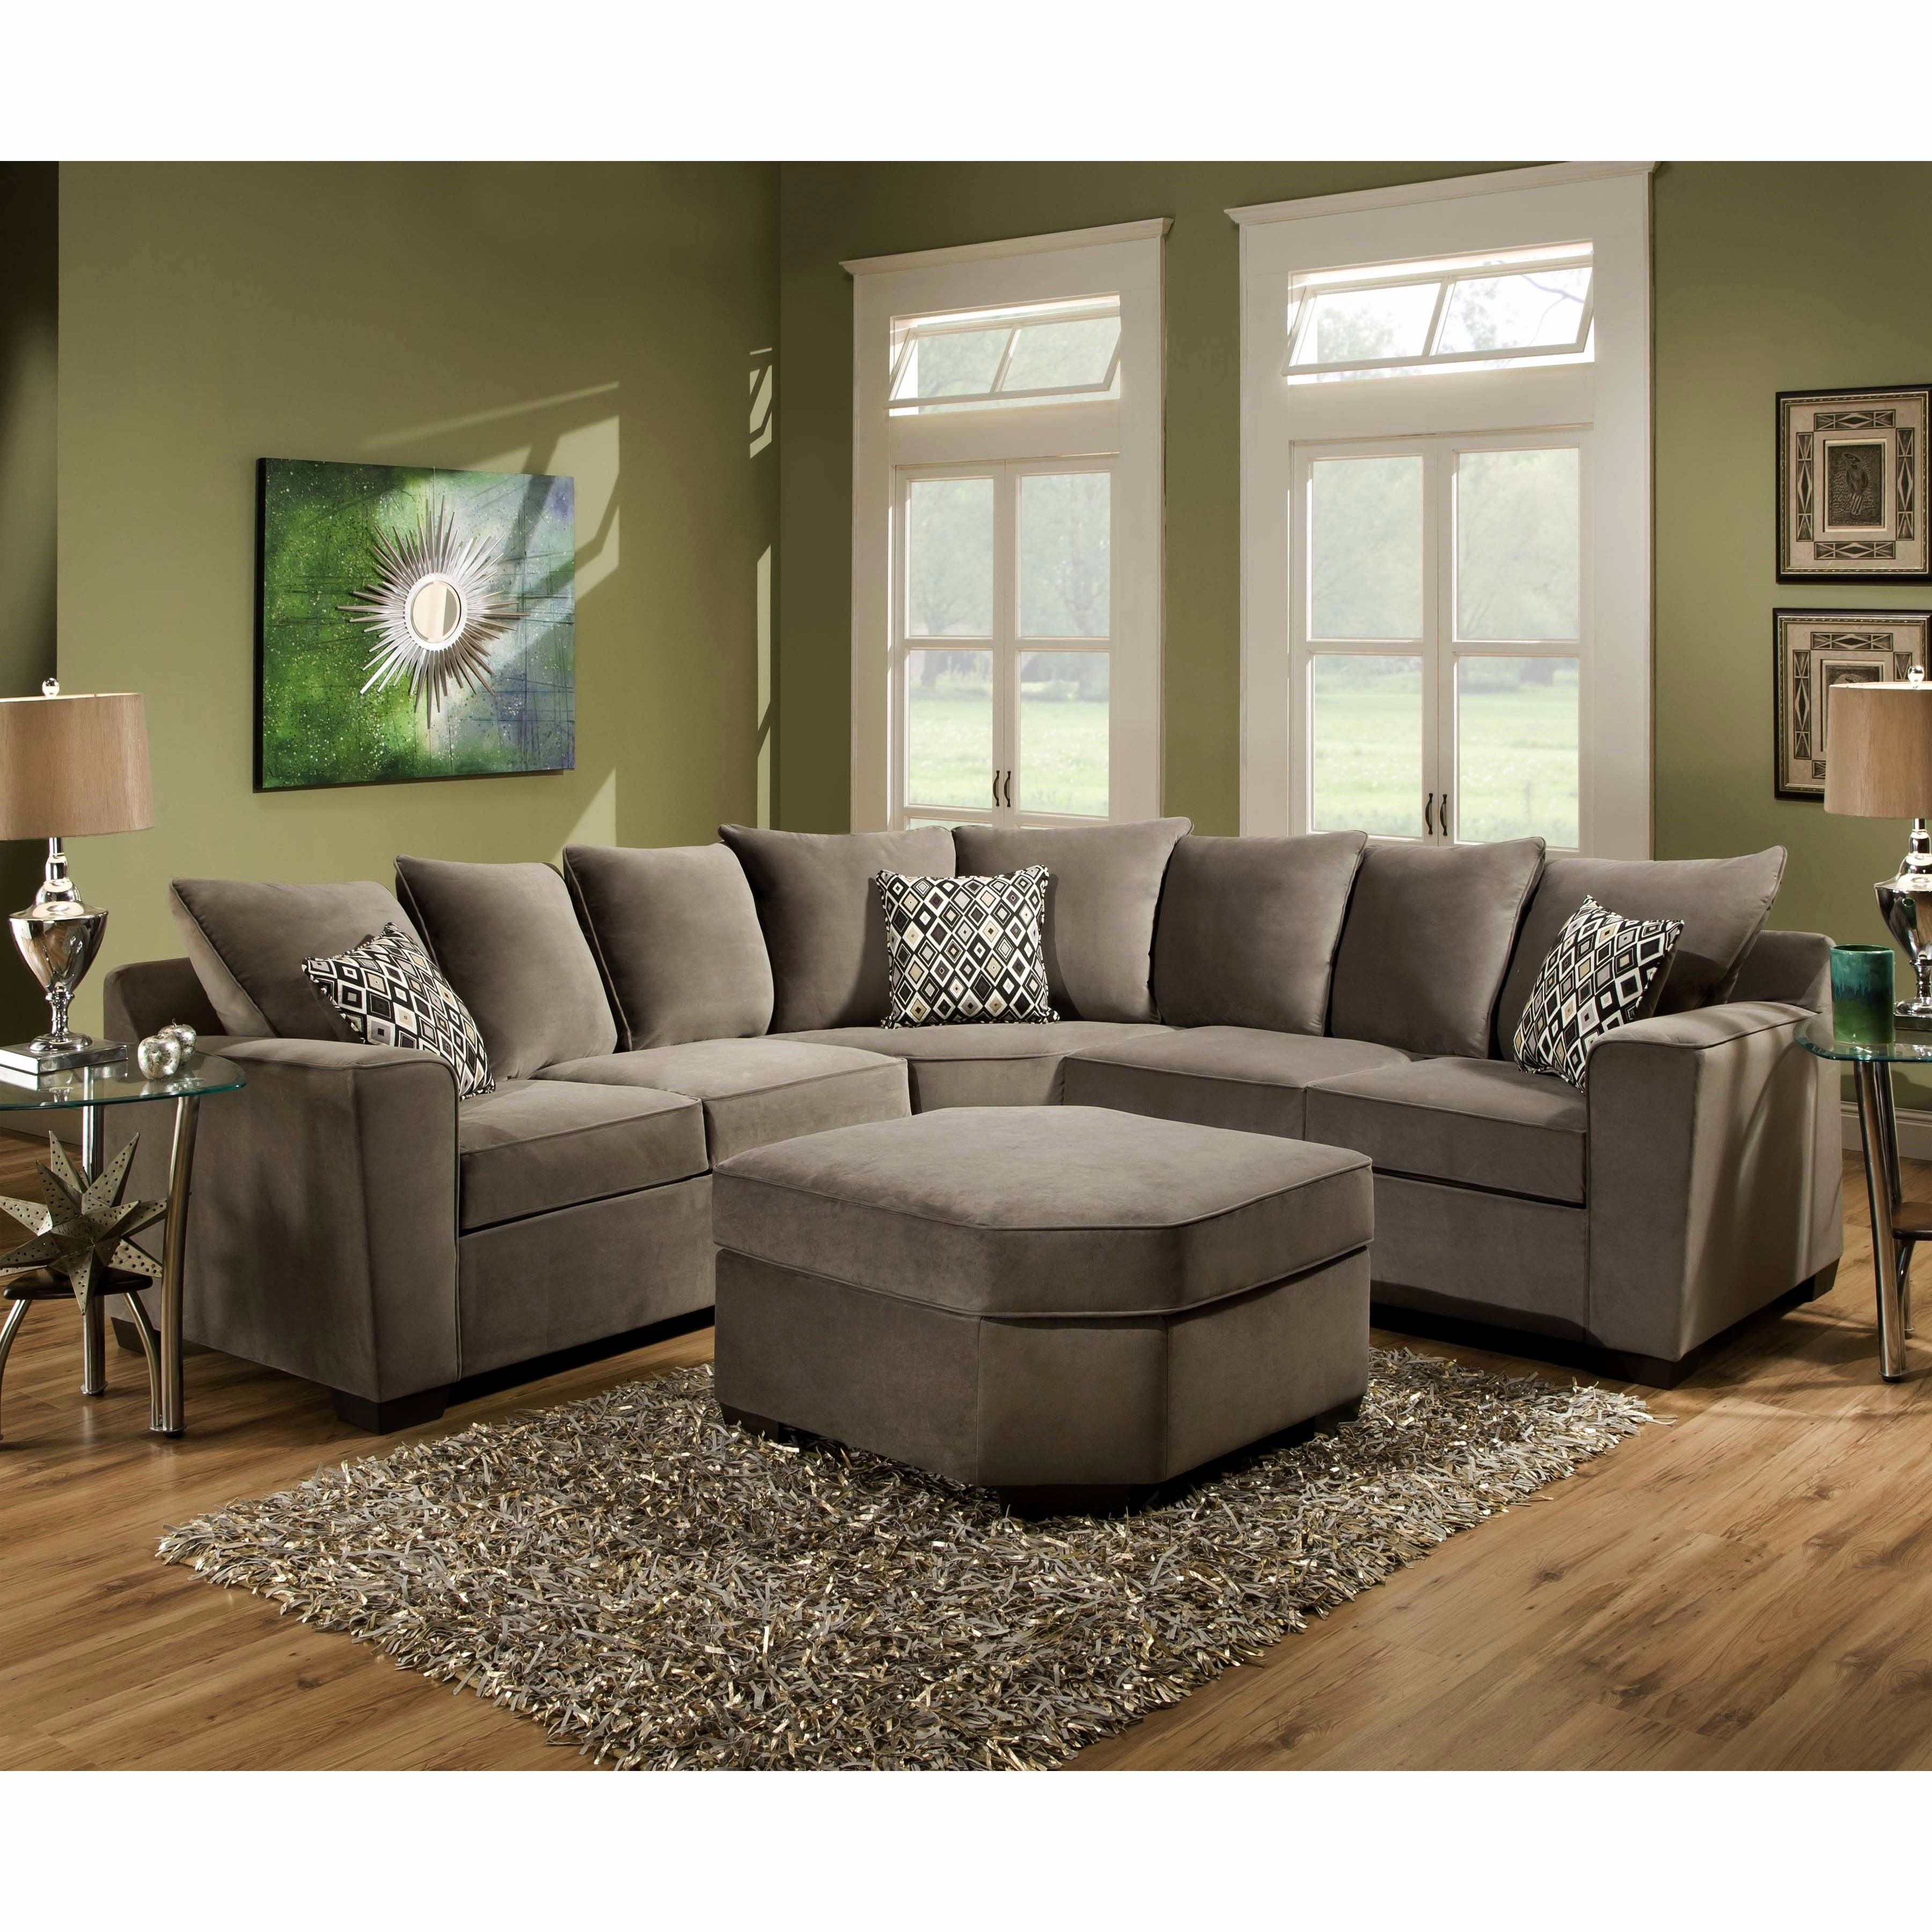 Elegant How To Get Stains Out Of Microfiber Sofa